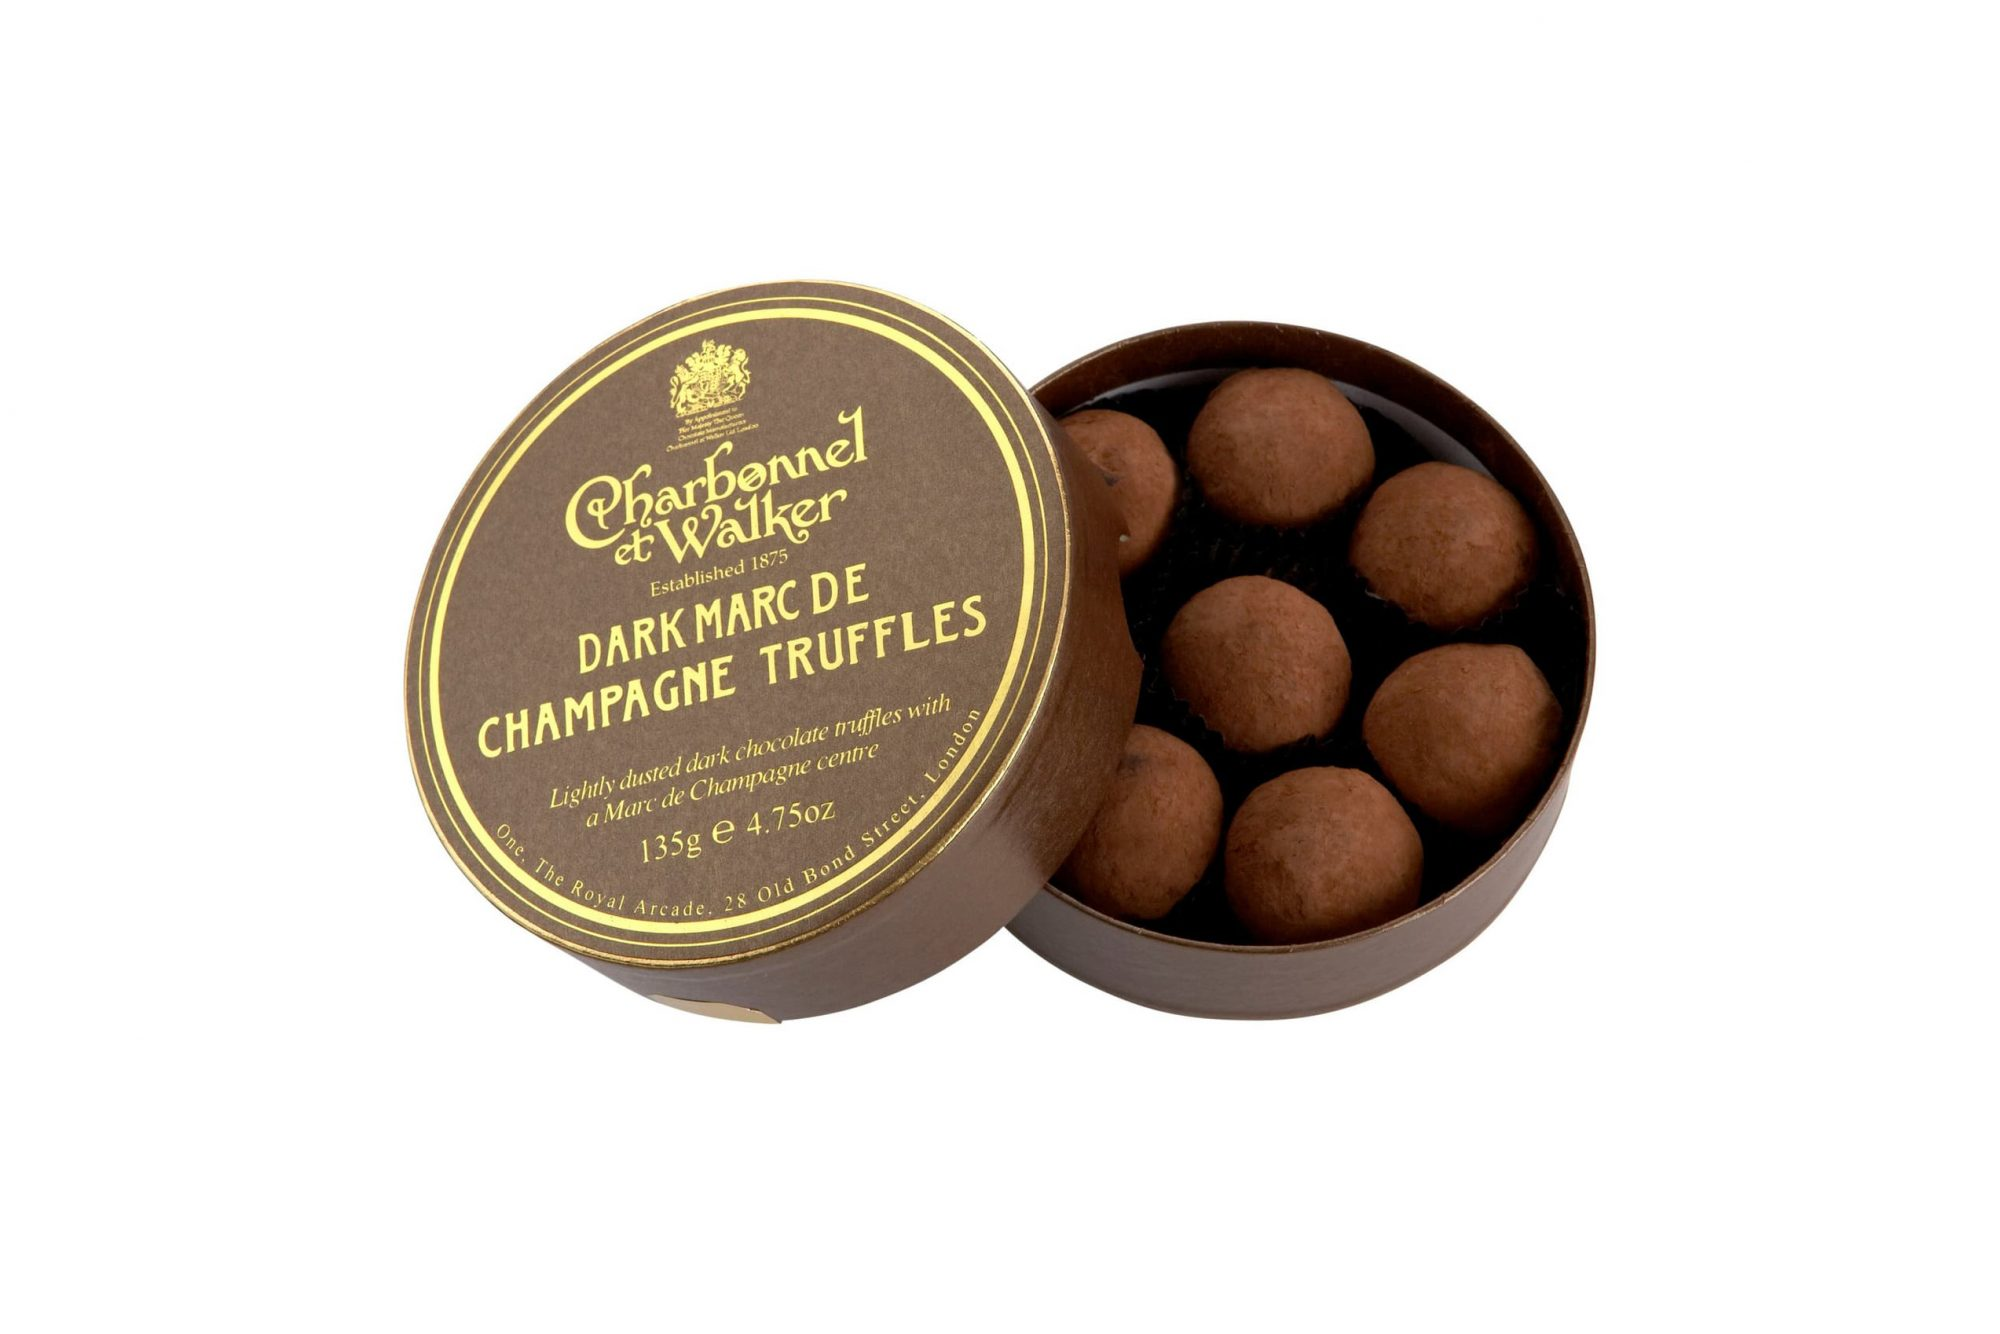 Flavored Chocolate Truffles in Gift Box CHARBONNEL ET WALKER